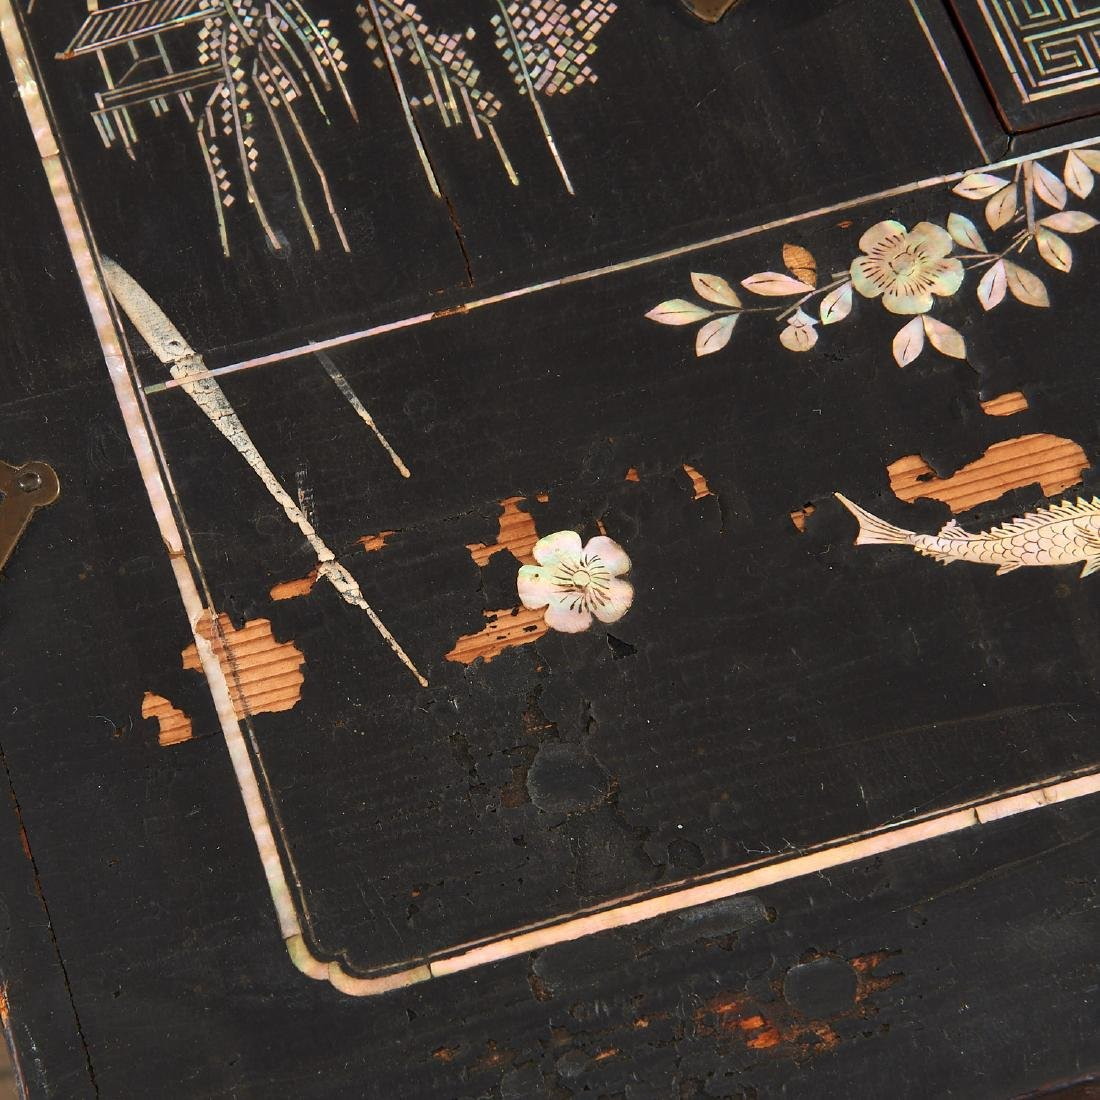 Chinese/Korean mother of pearl inlaid chest - 8